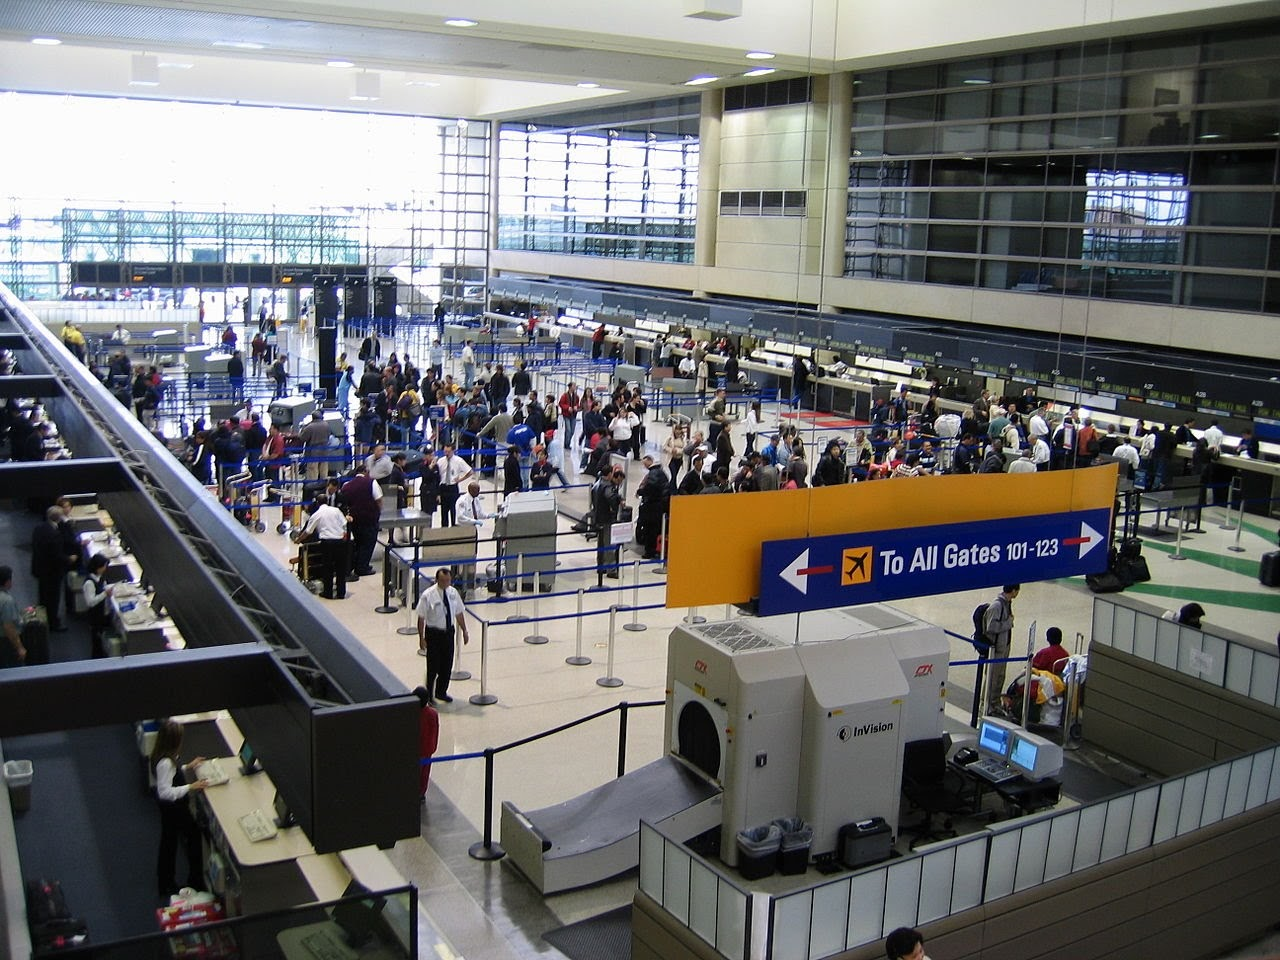 ADL report downplays Islamist terrorism at Los Angeles airport